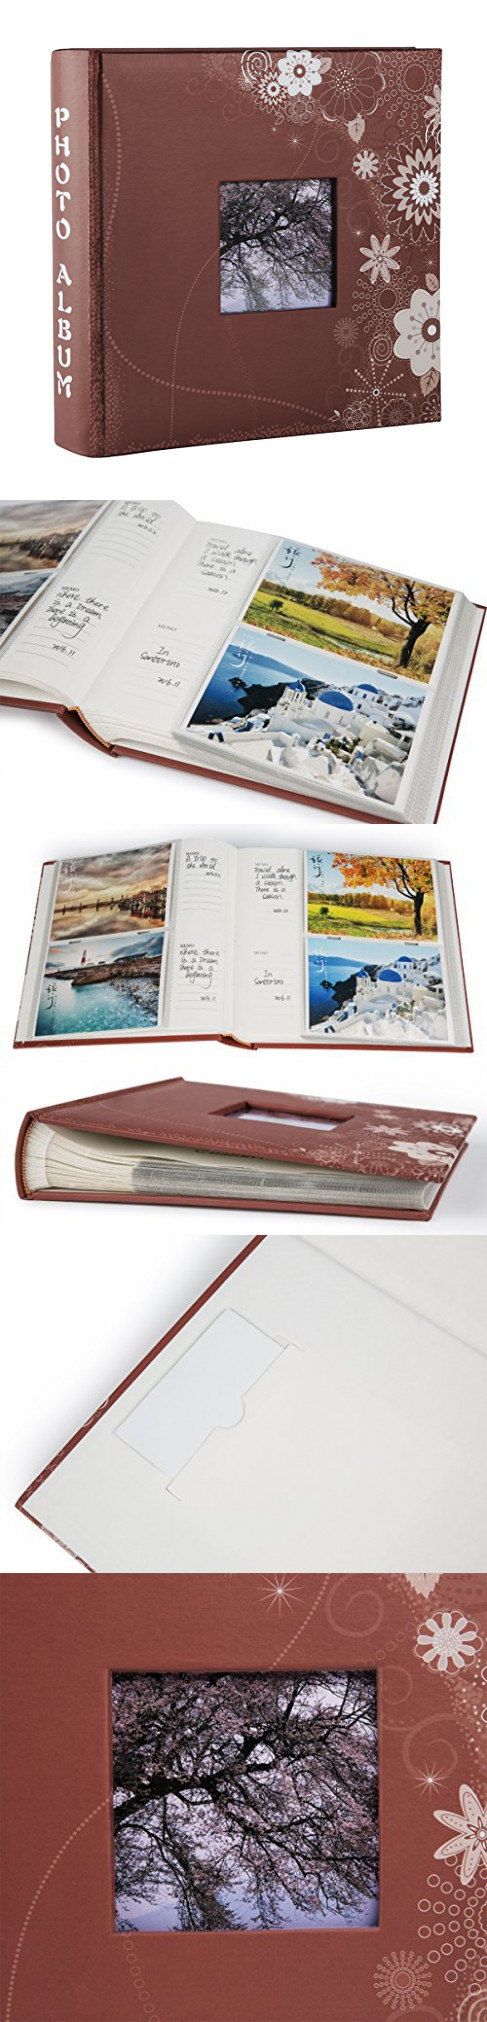 vacation photo albums 4x6